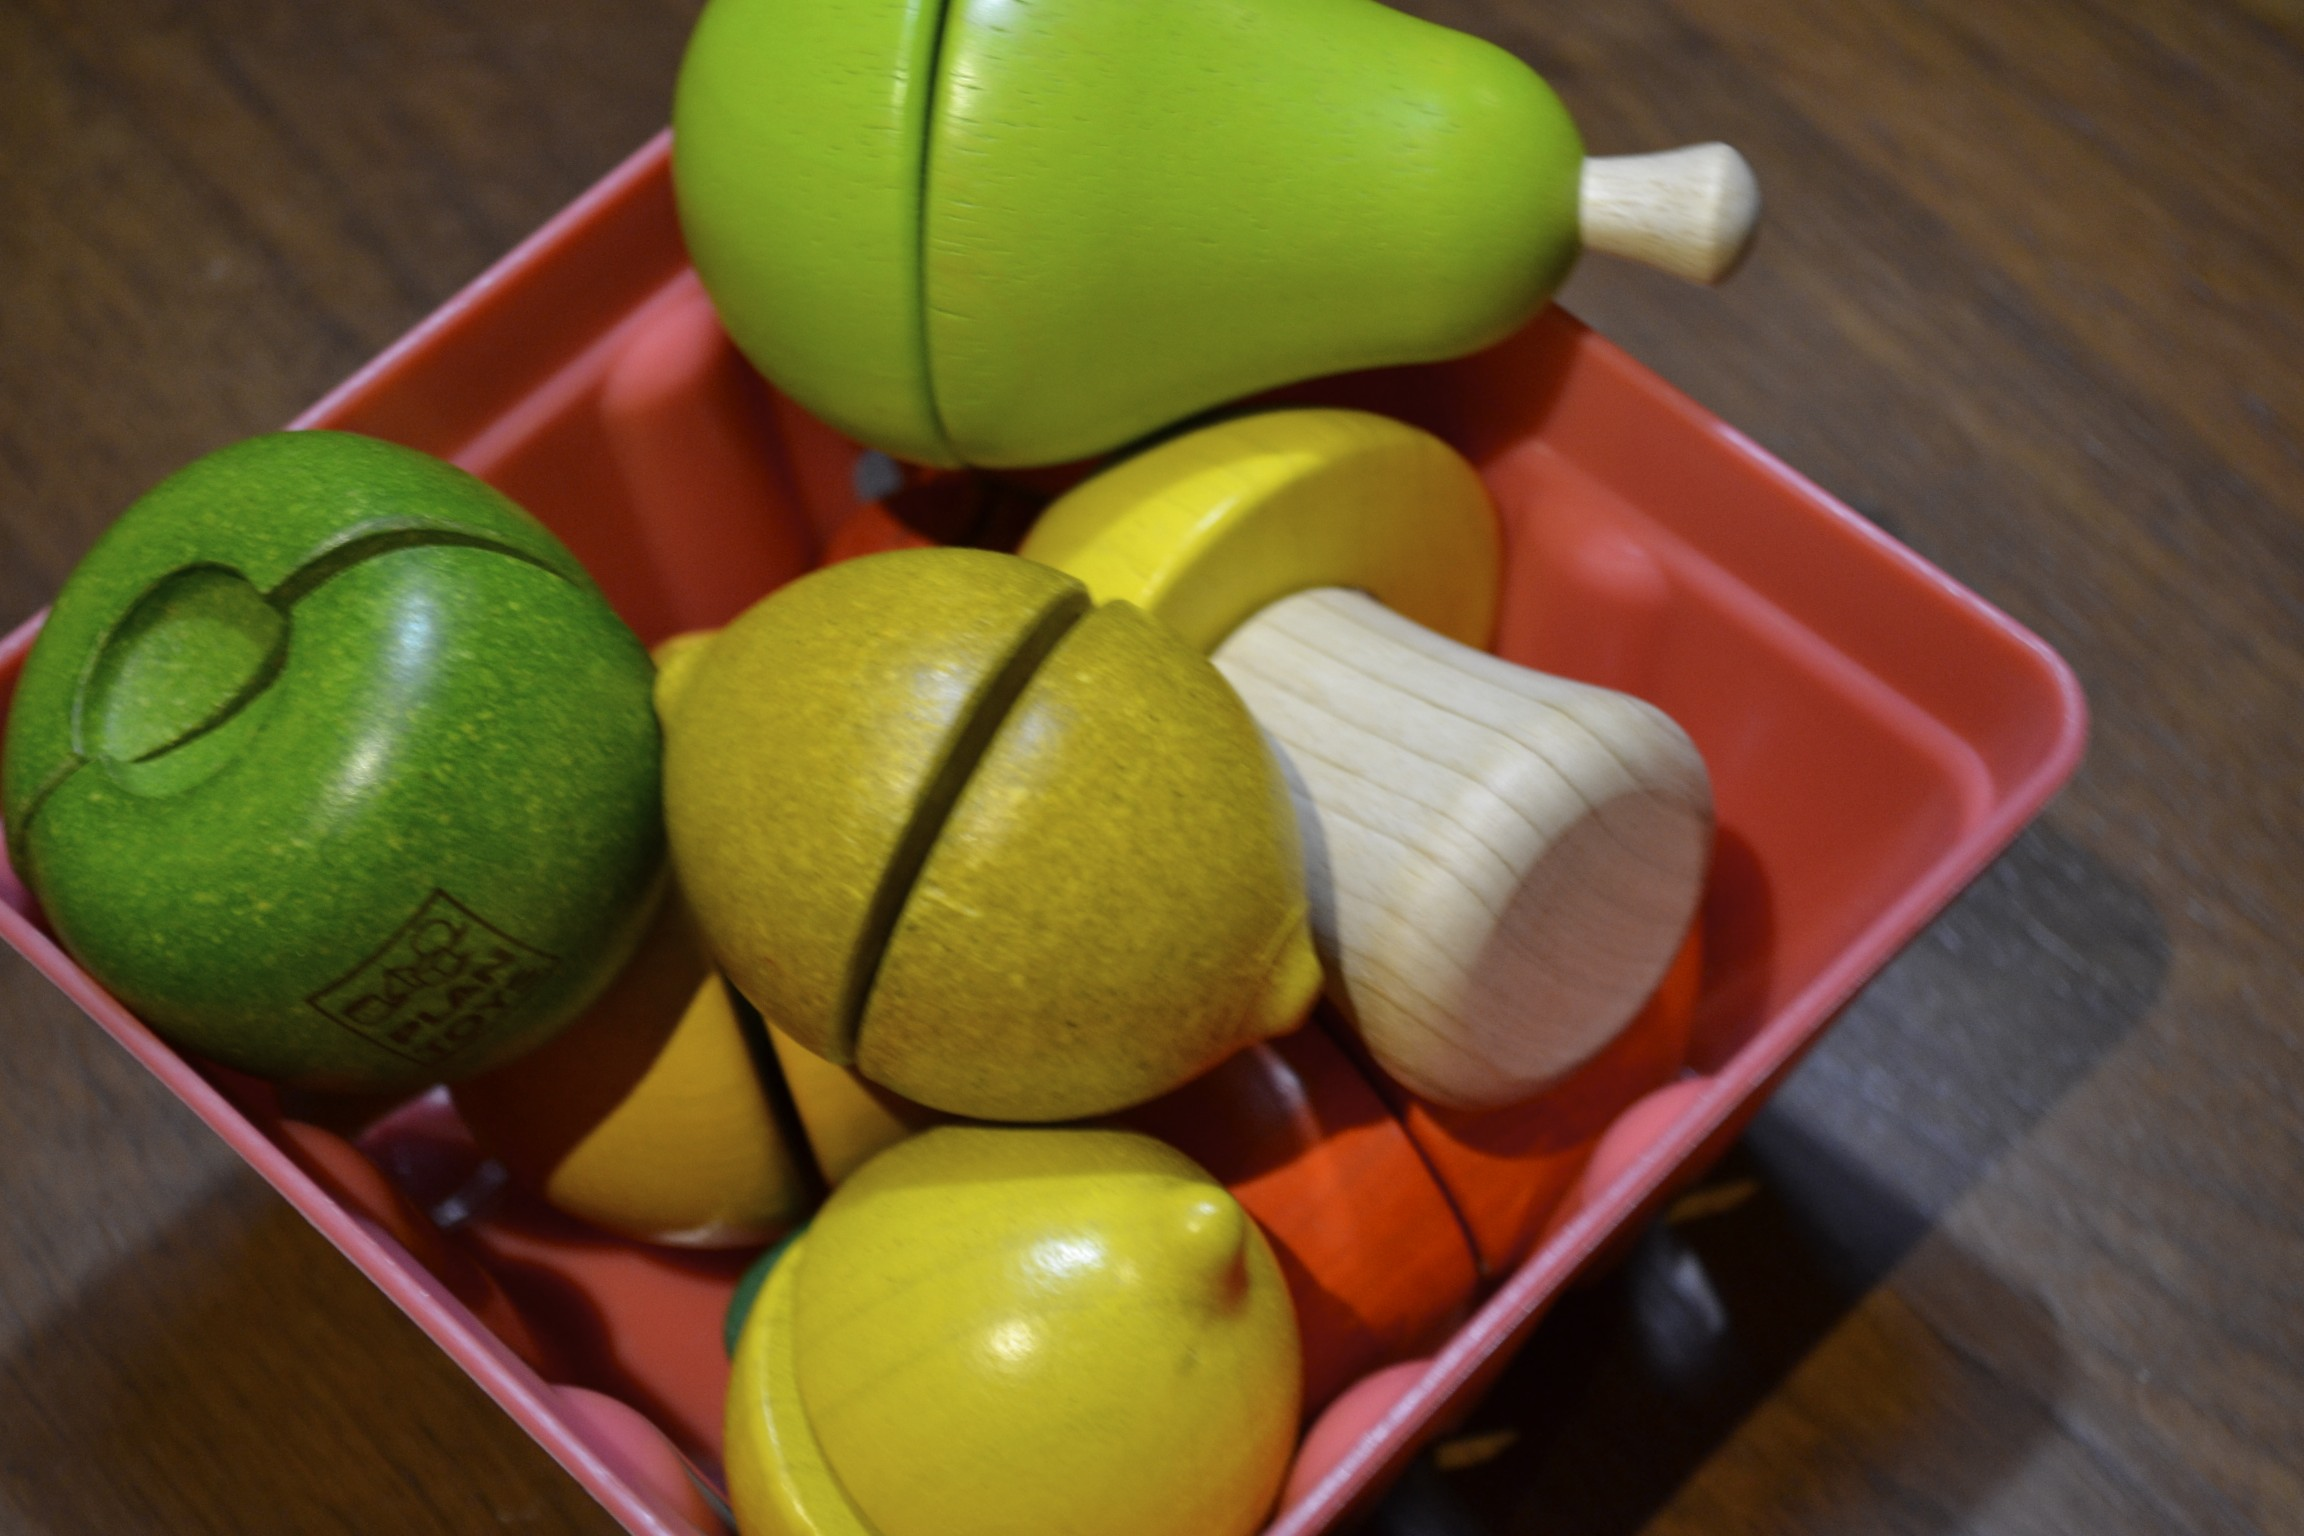 advent goodies from the month...wooden fruits and veggies